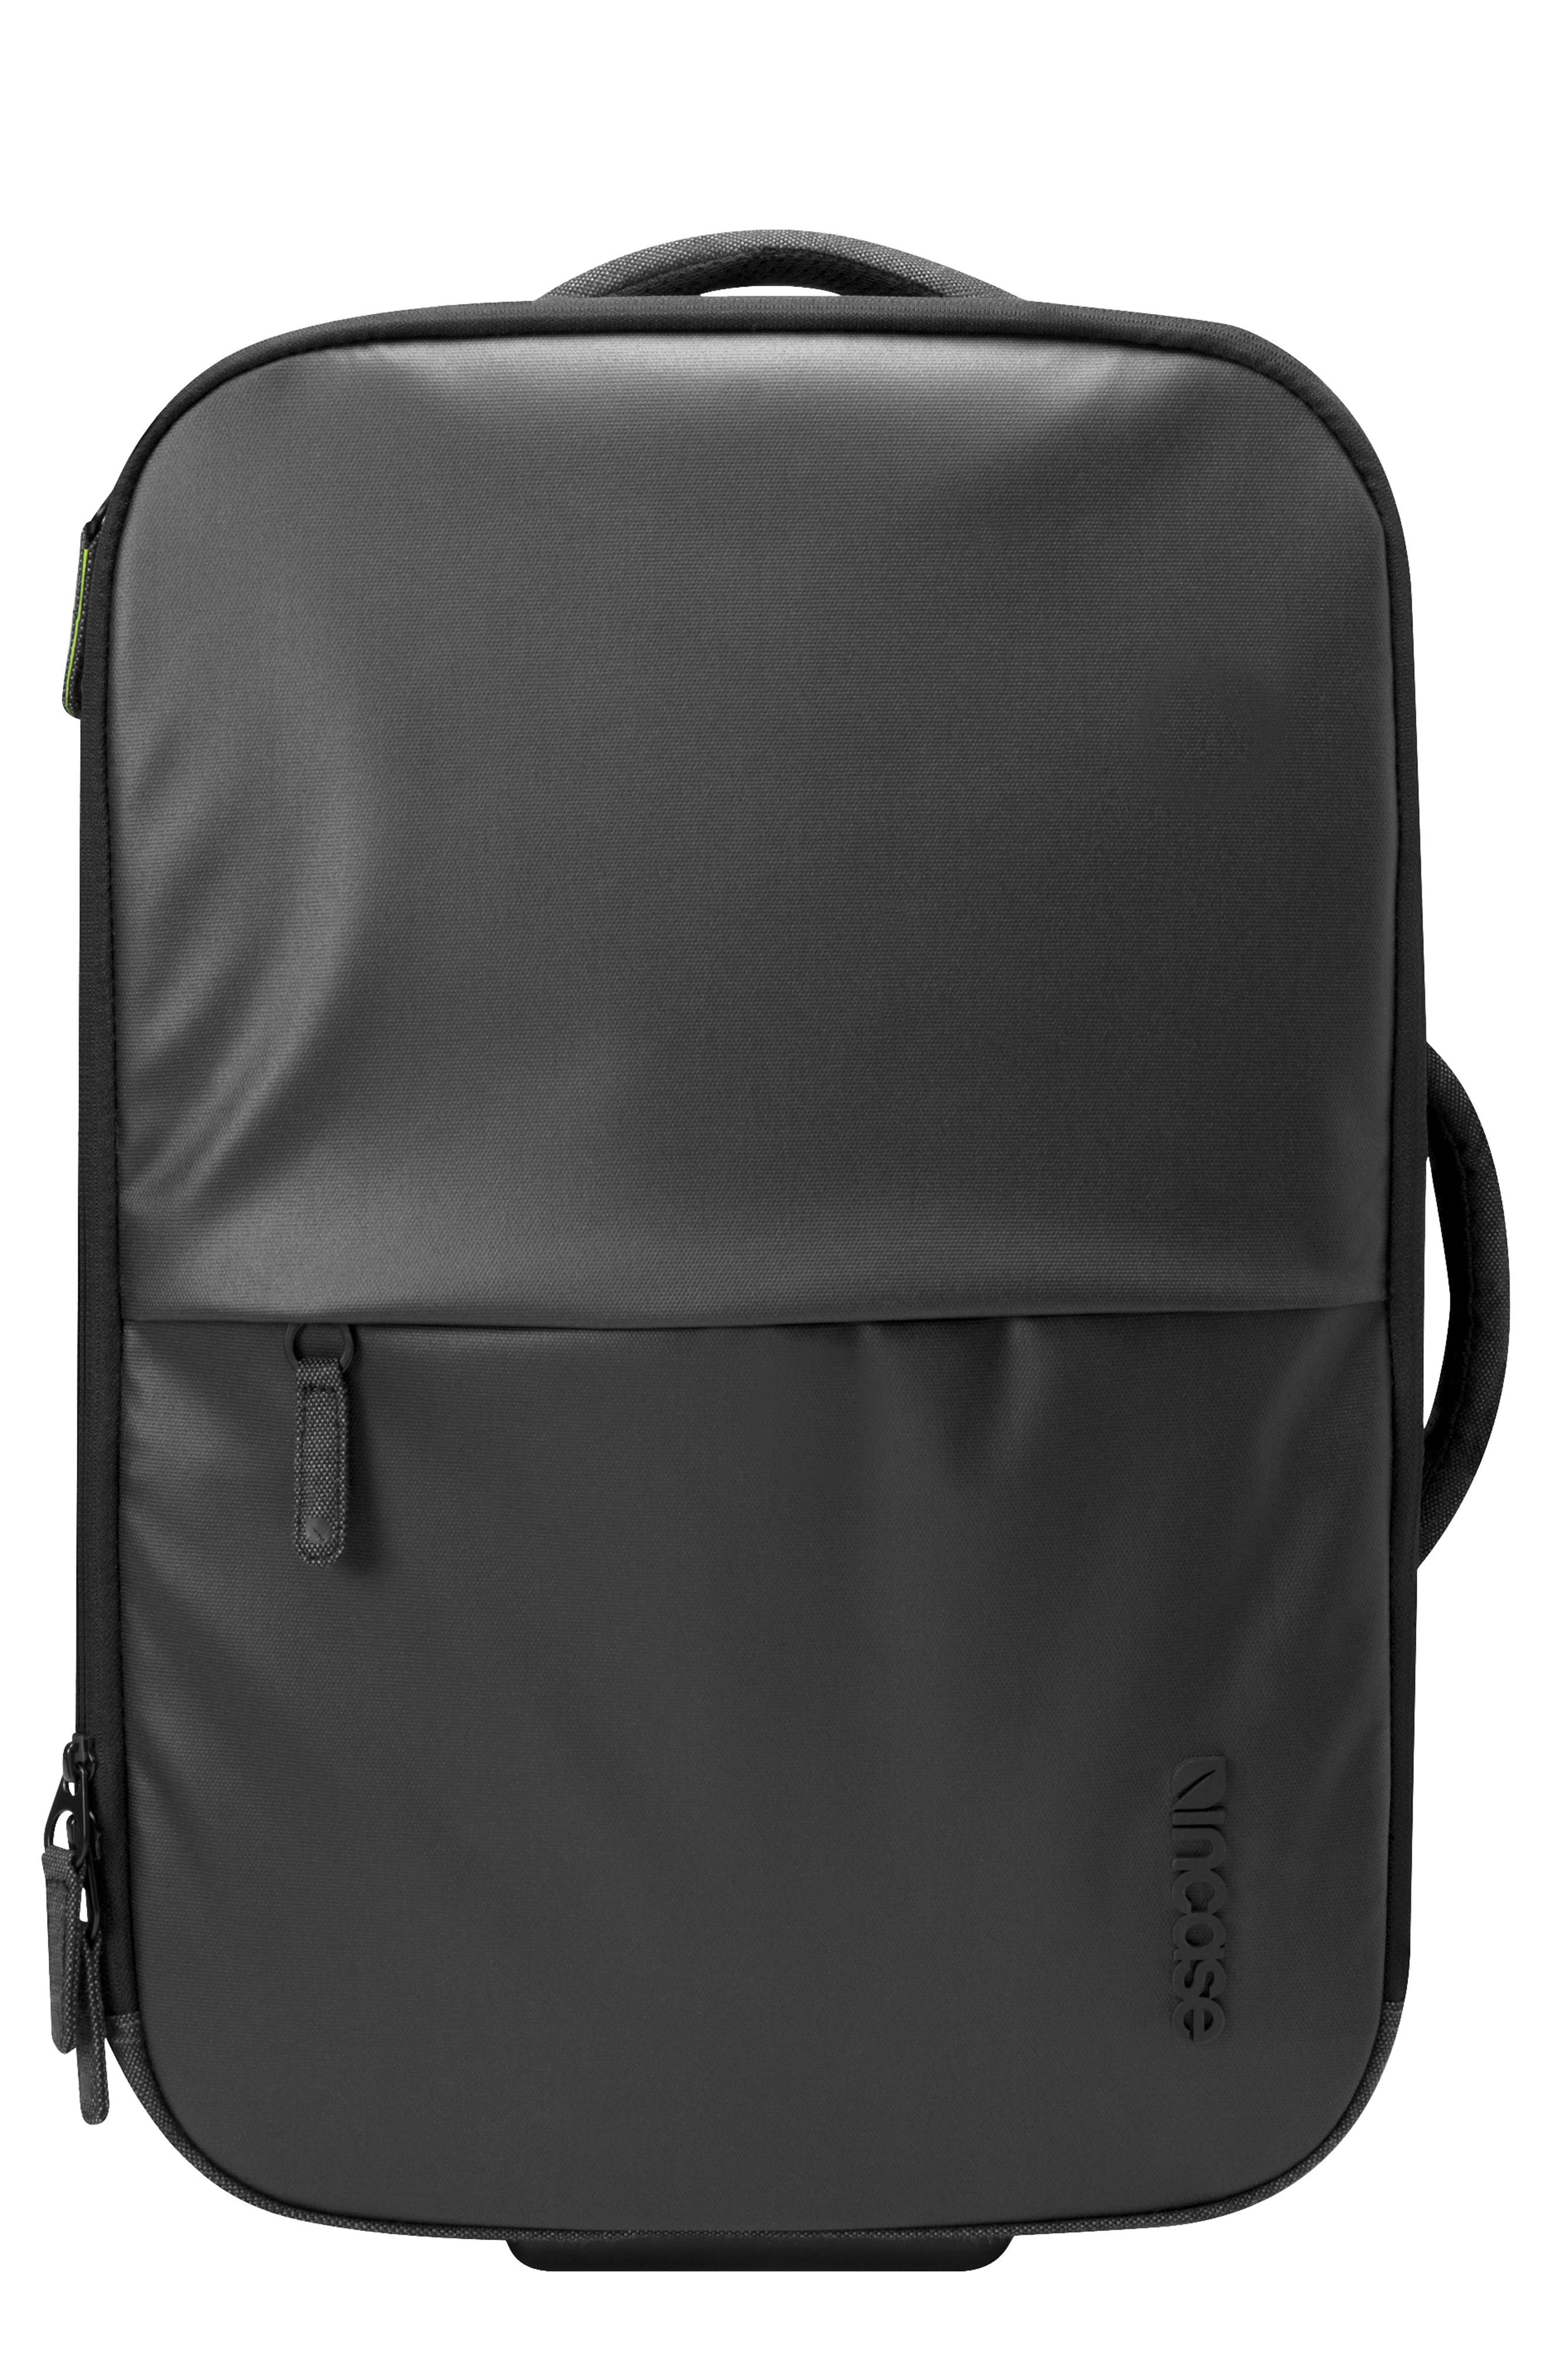 EO Wheeled 23-Inch Suitcase,                             Main thumbnail 1, color,                             Black